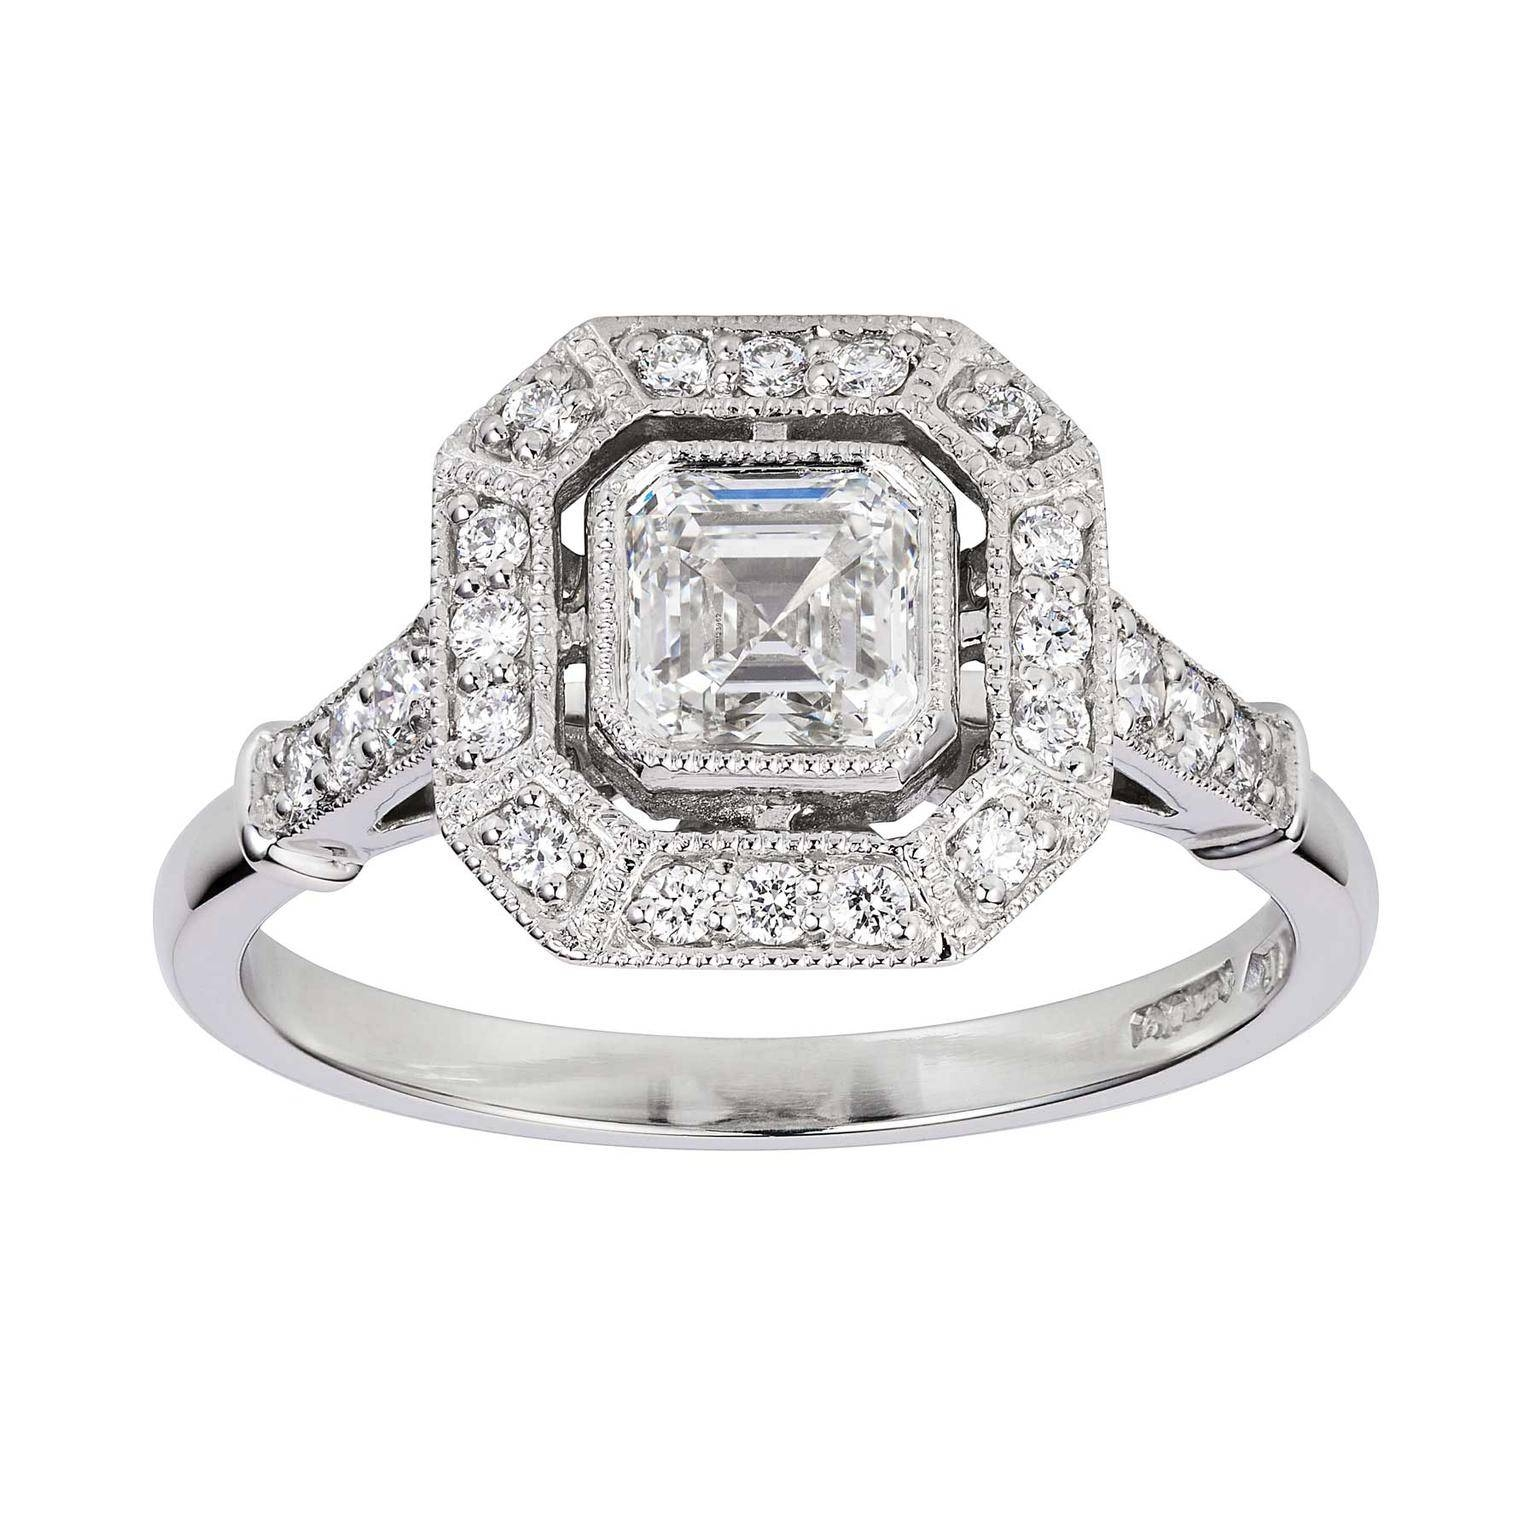 Art Deco Asscher Cut Diamond Engagement Ring | London Victorian For Asscher Diamond Engagement Rings (View 7 of 15)